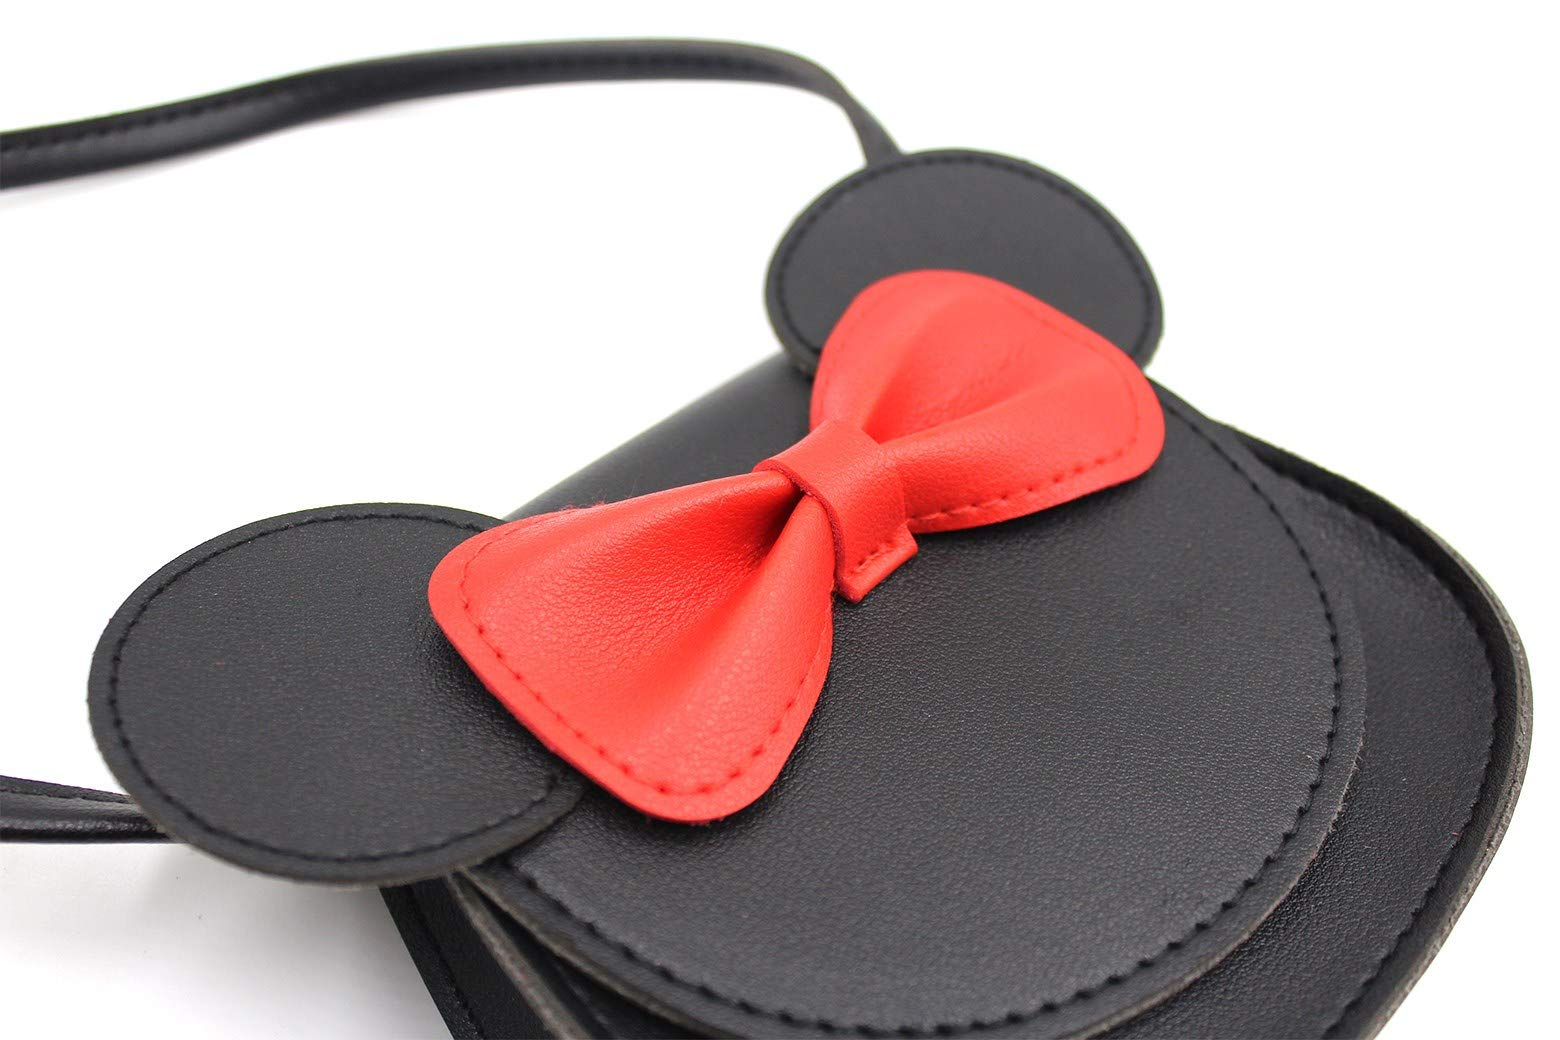 ZGMYC Kids Toddlers Bowknot Crossbody Purse Small Shoulder Bag Satchel with Cartoon Ears by ZGMYC (Image #5)